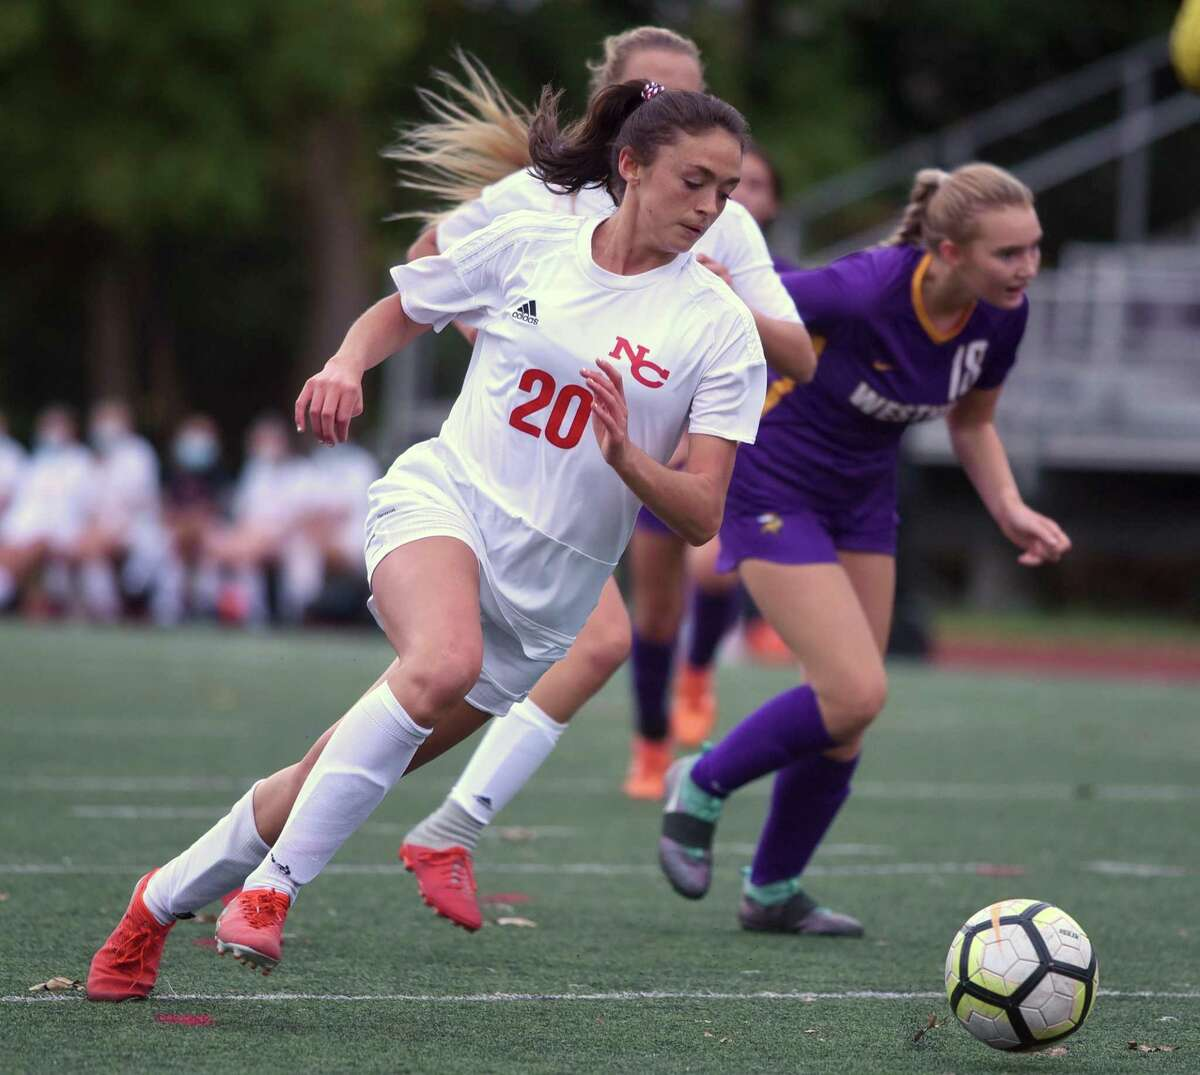 New Canaan's Emma Schuh (20) breaks away with the ball during the Rams' girls soccer game at Westhill High School in Stamford on Tuesday, Oct. 27, 2020.